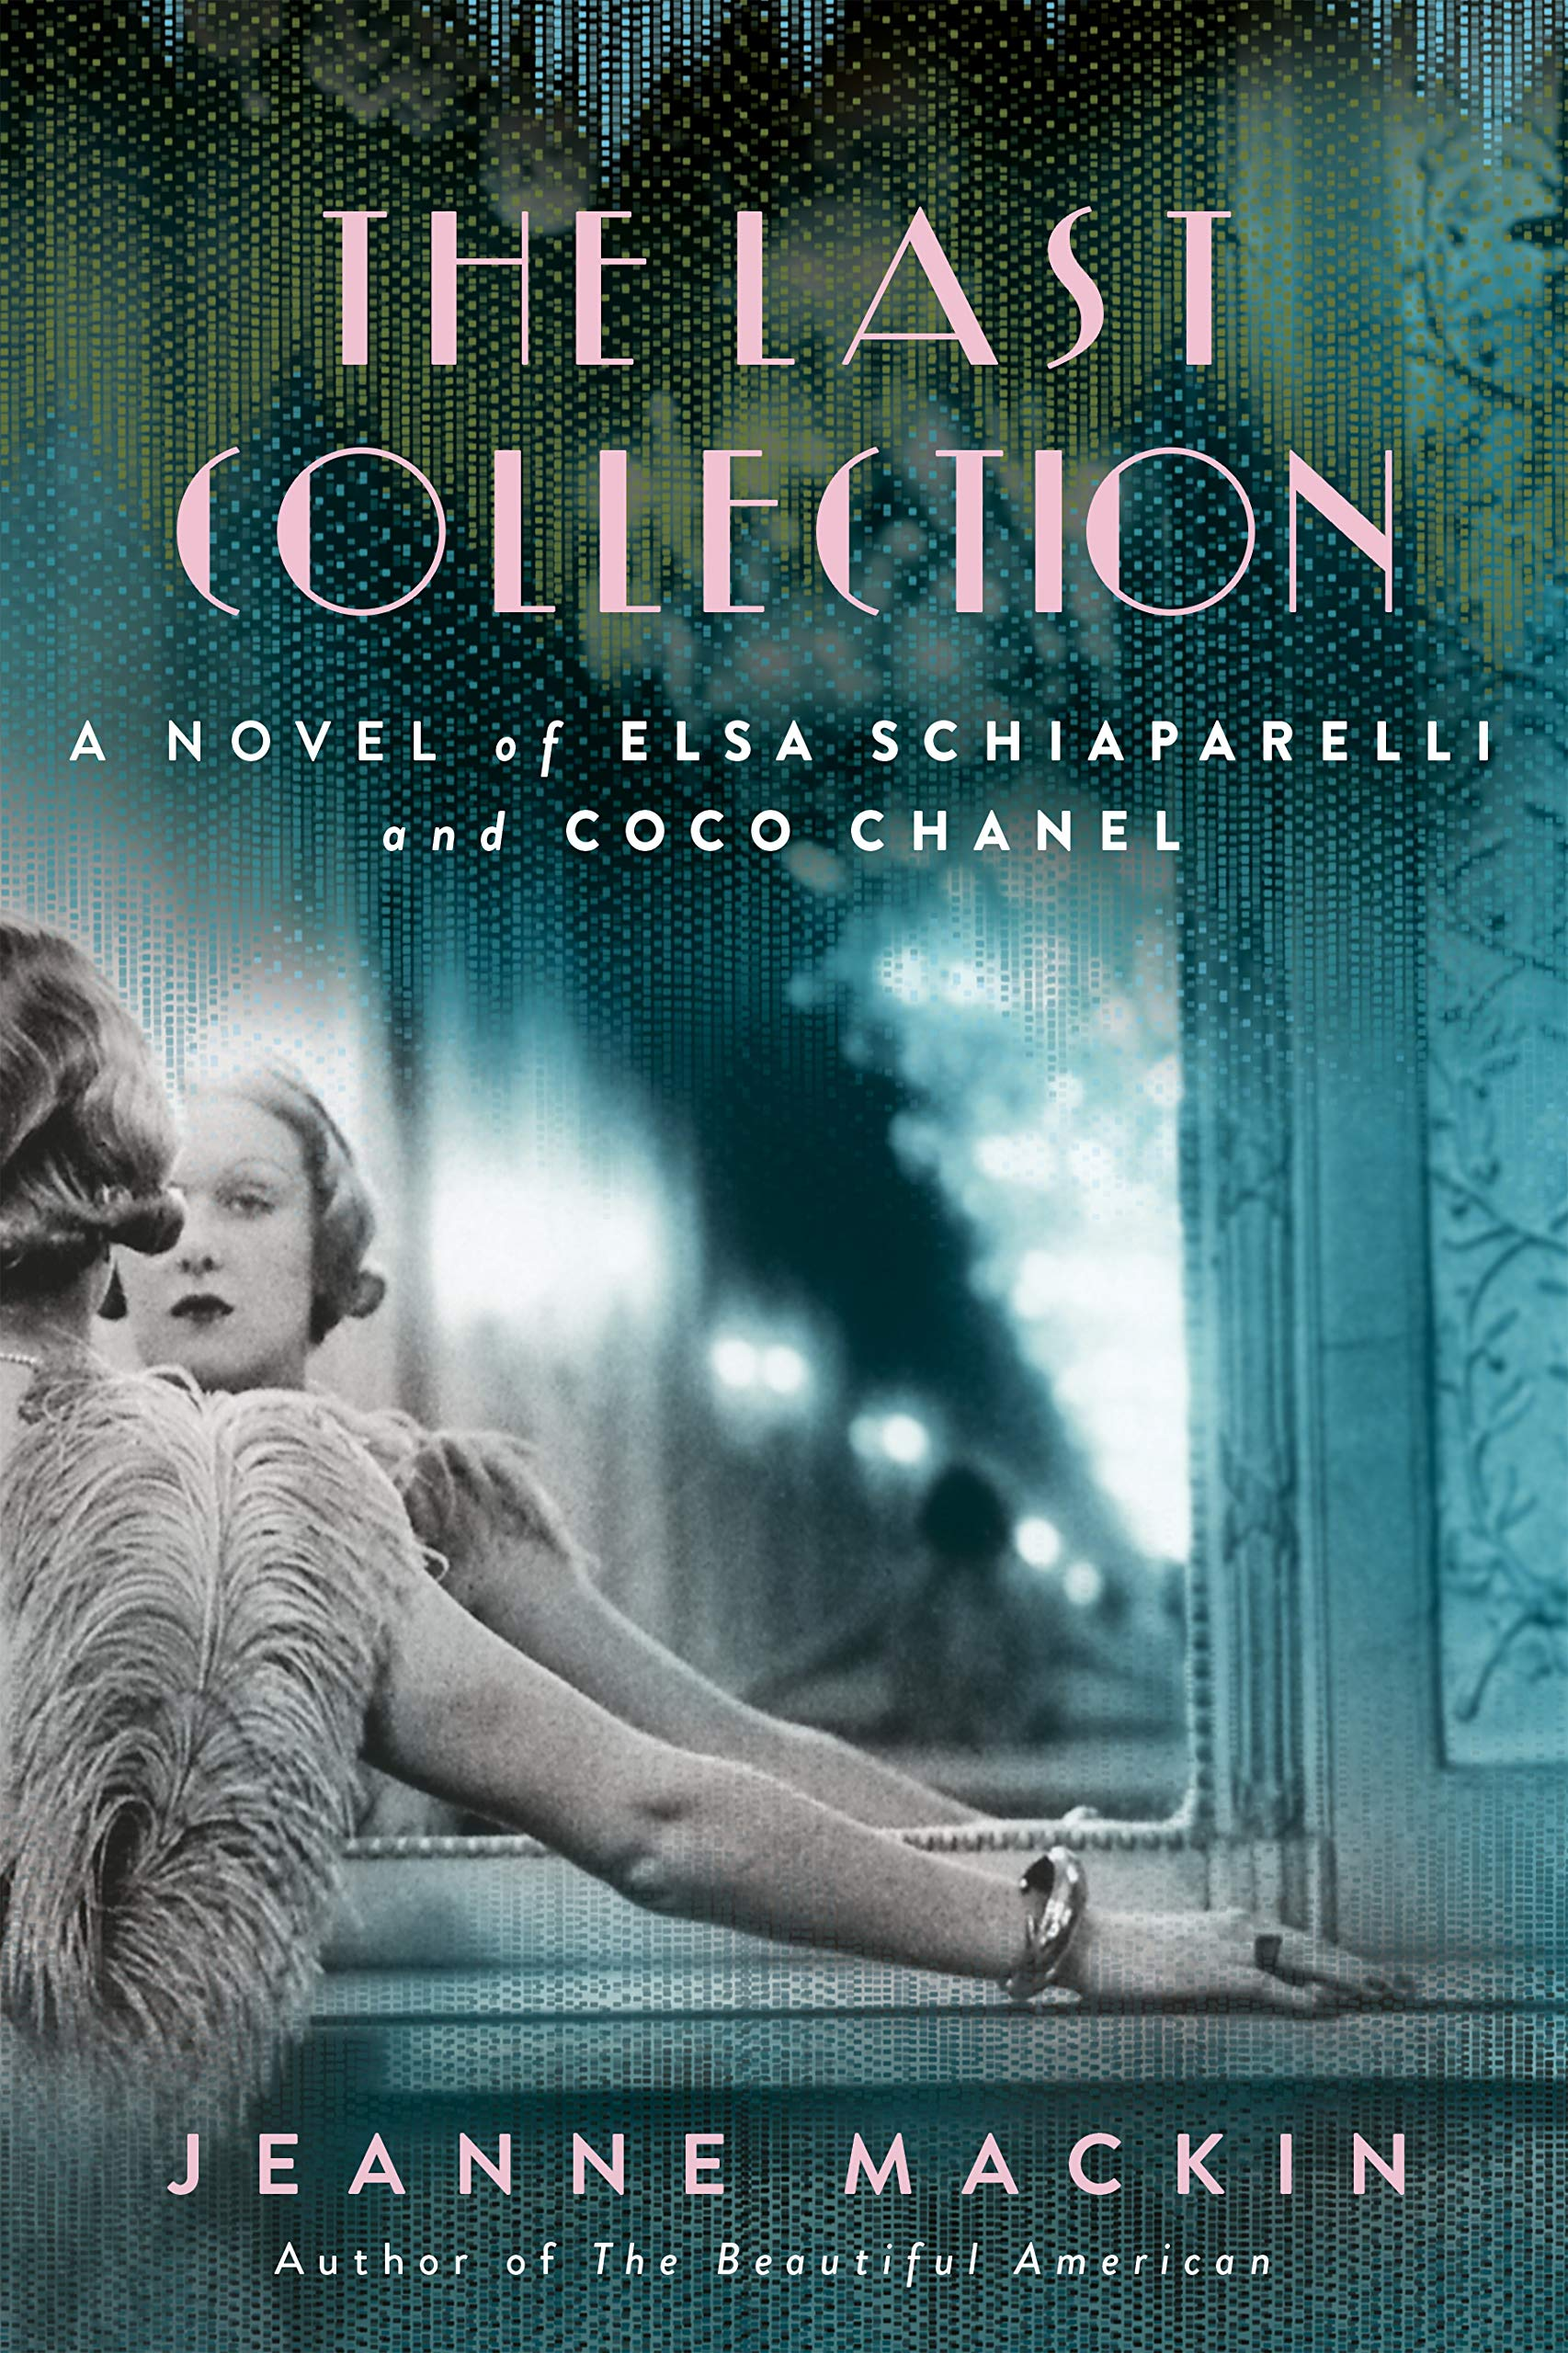 the last collection by jeanne mackin copy.jpg